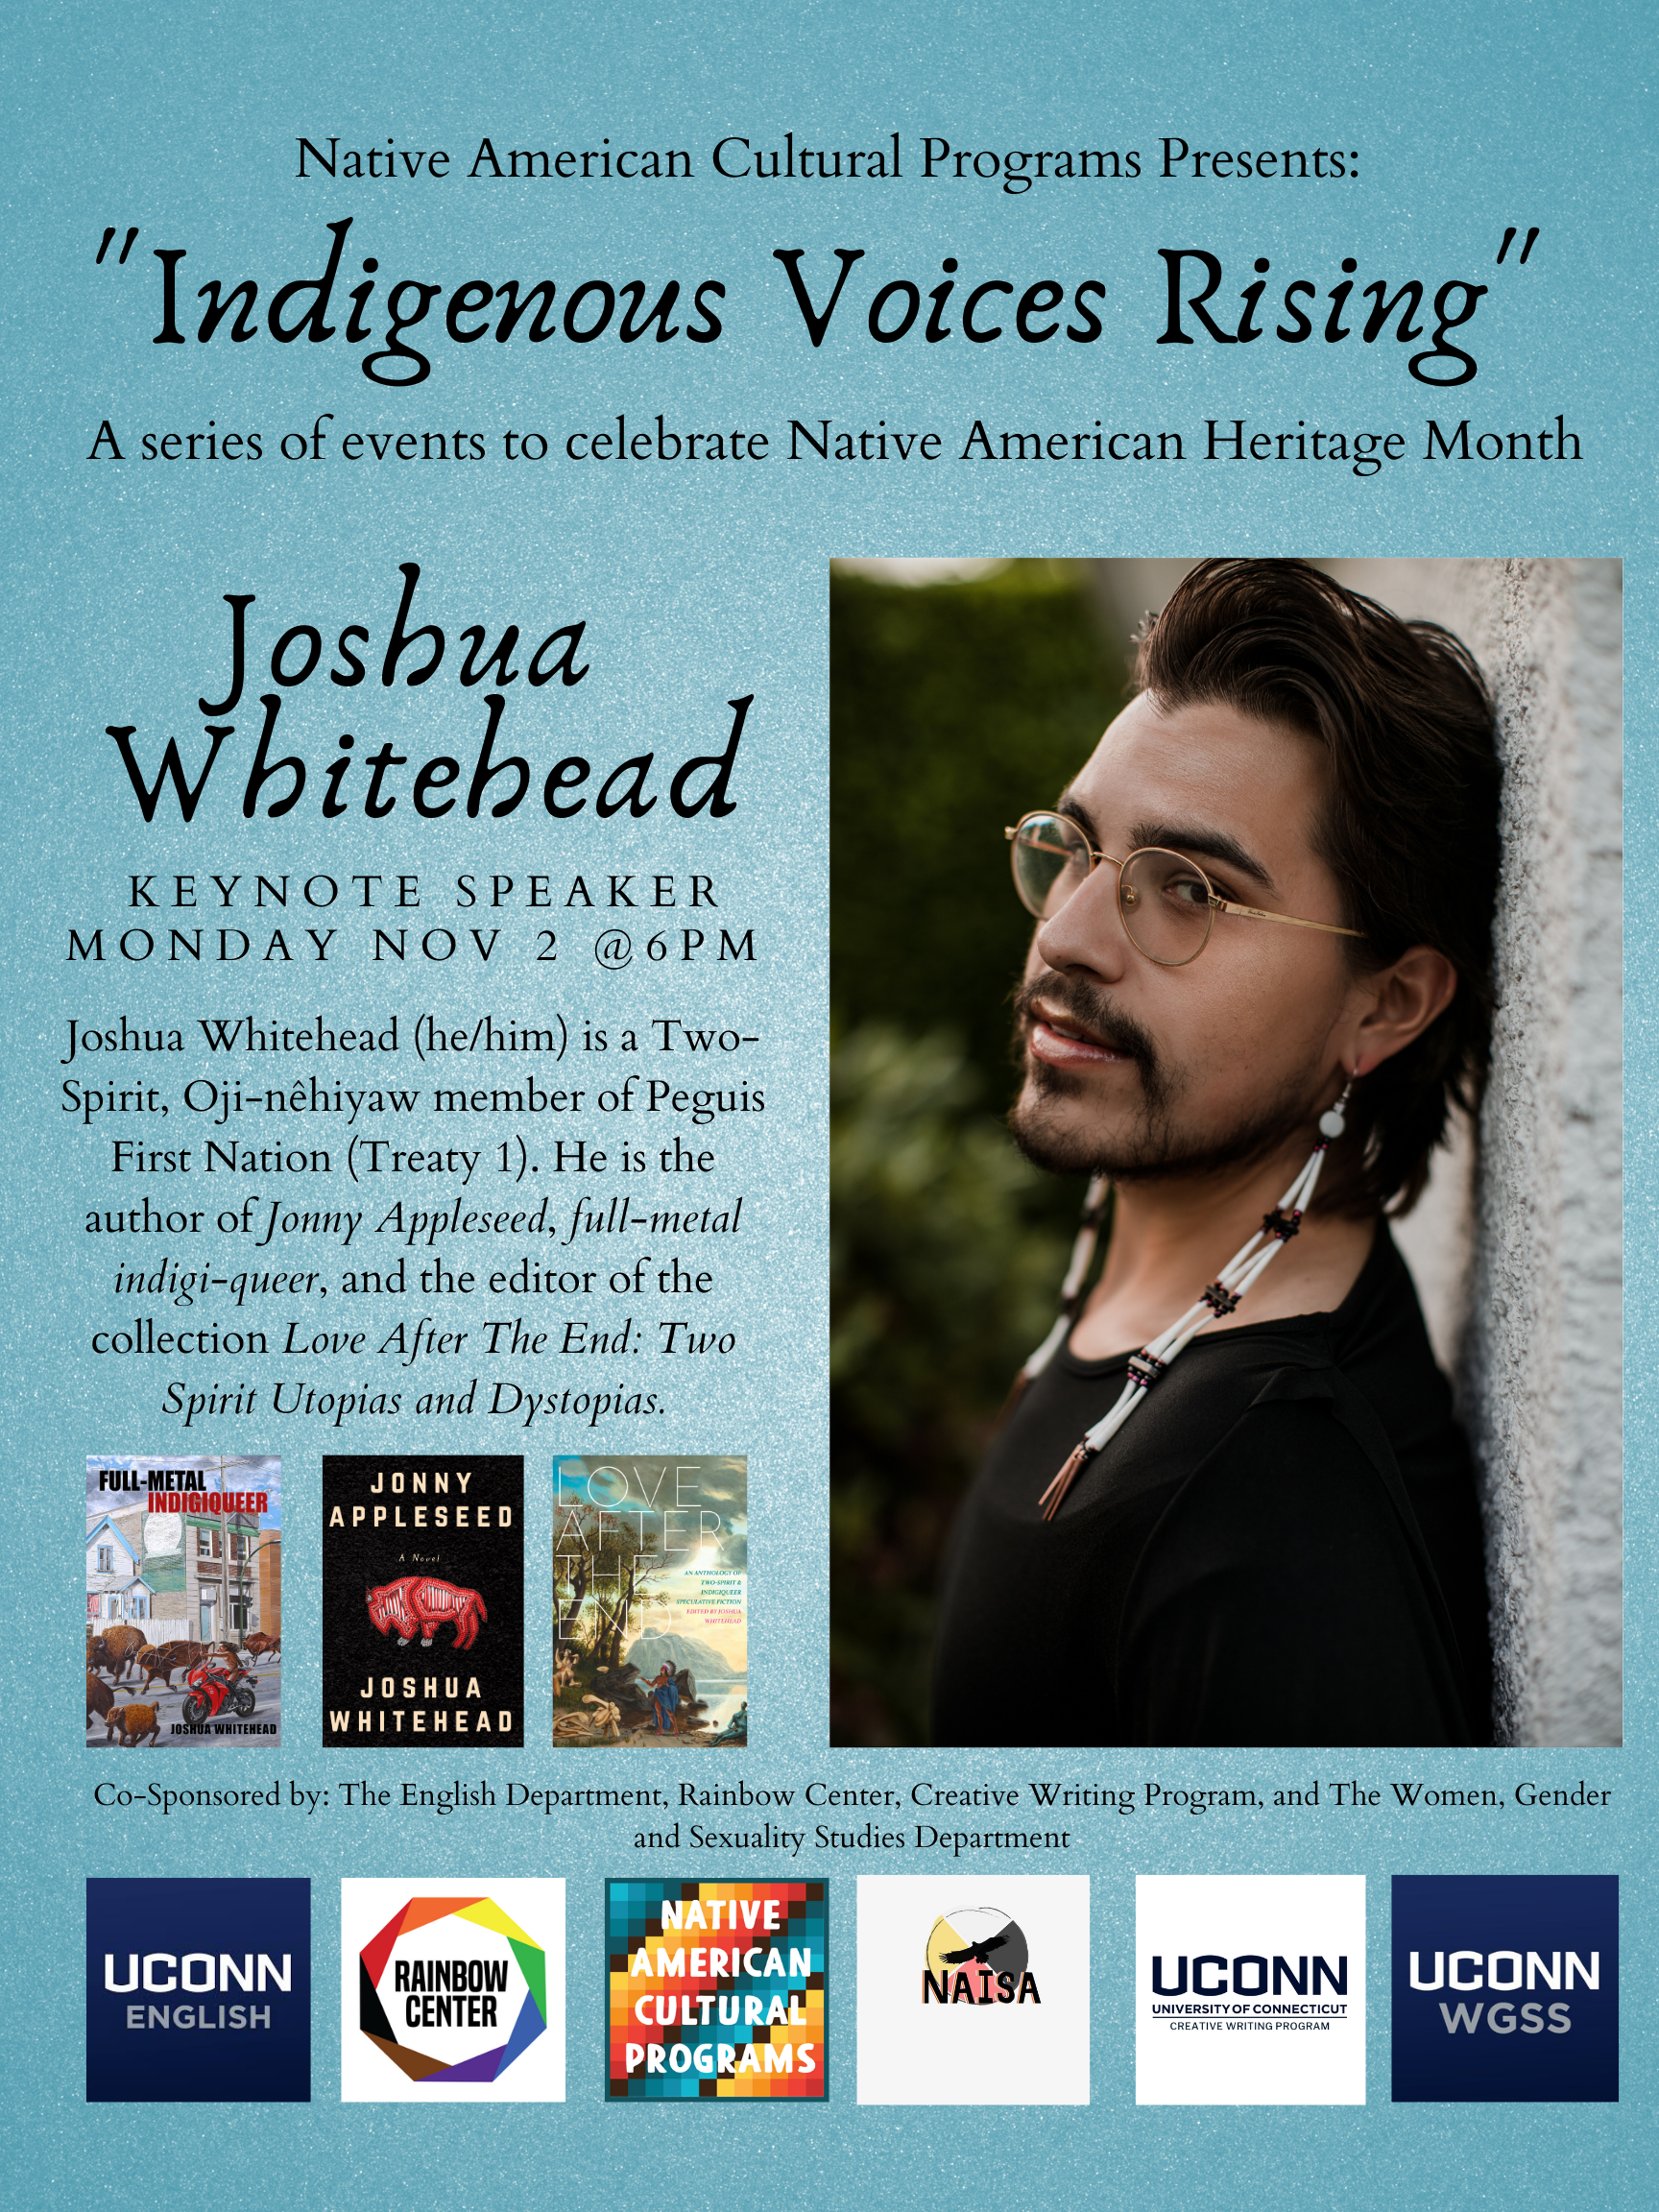 OUR FEATURED EVENT… Joshua Whitehead: a keynote speech and reading, Monday Nov. 2, 6pm via Zoom